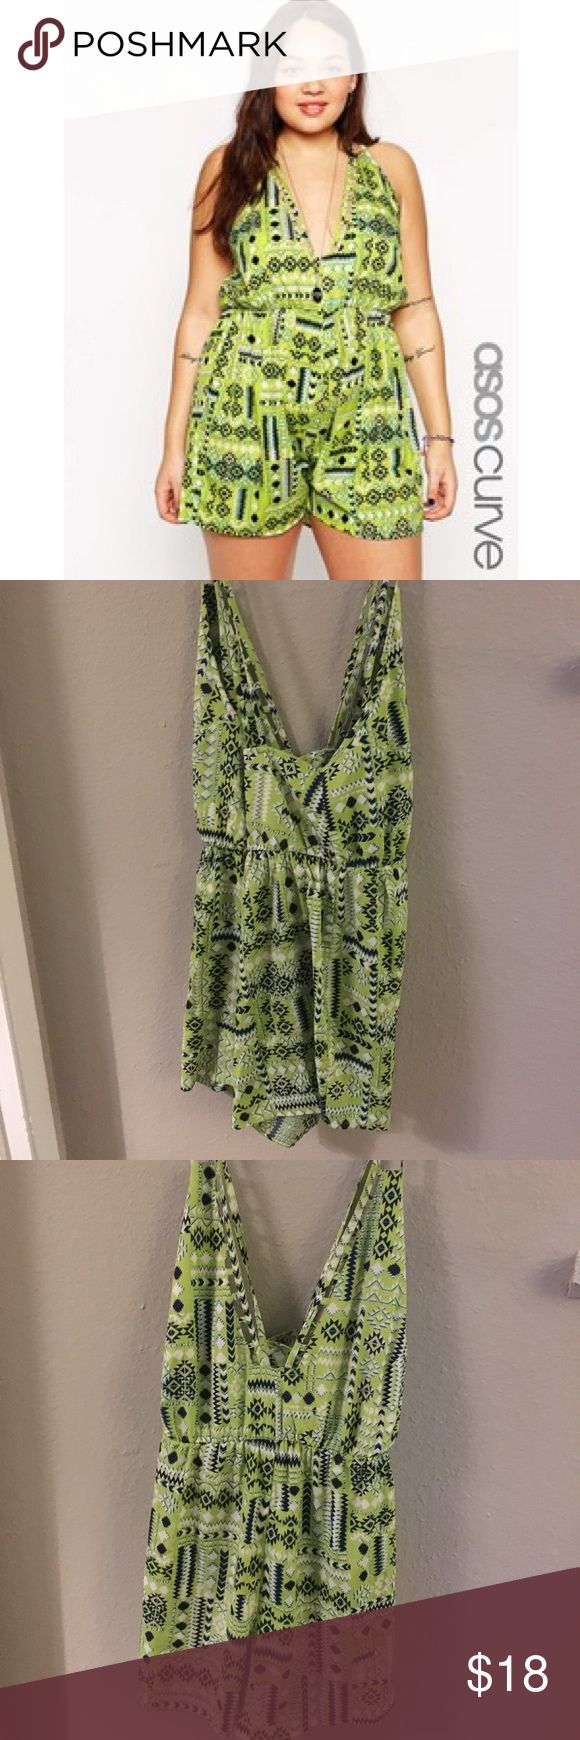 ASOS green romper Little green romper that I think would look cute over swim suit. ASOS Curve Other